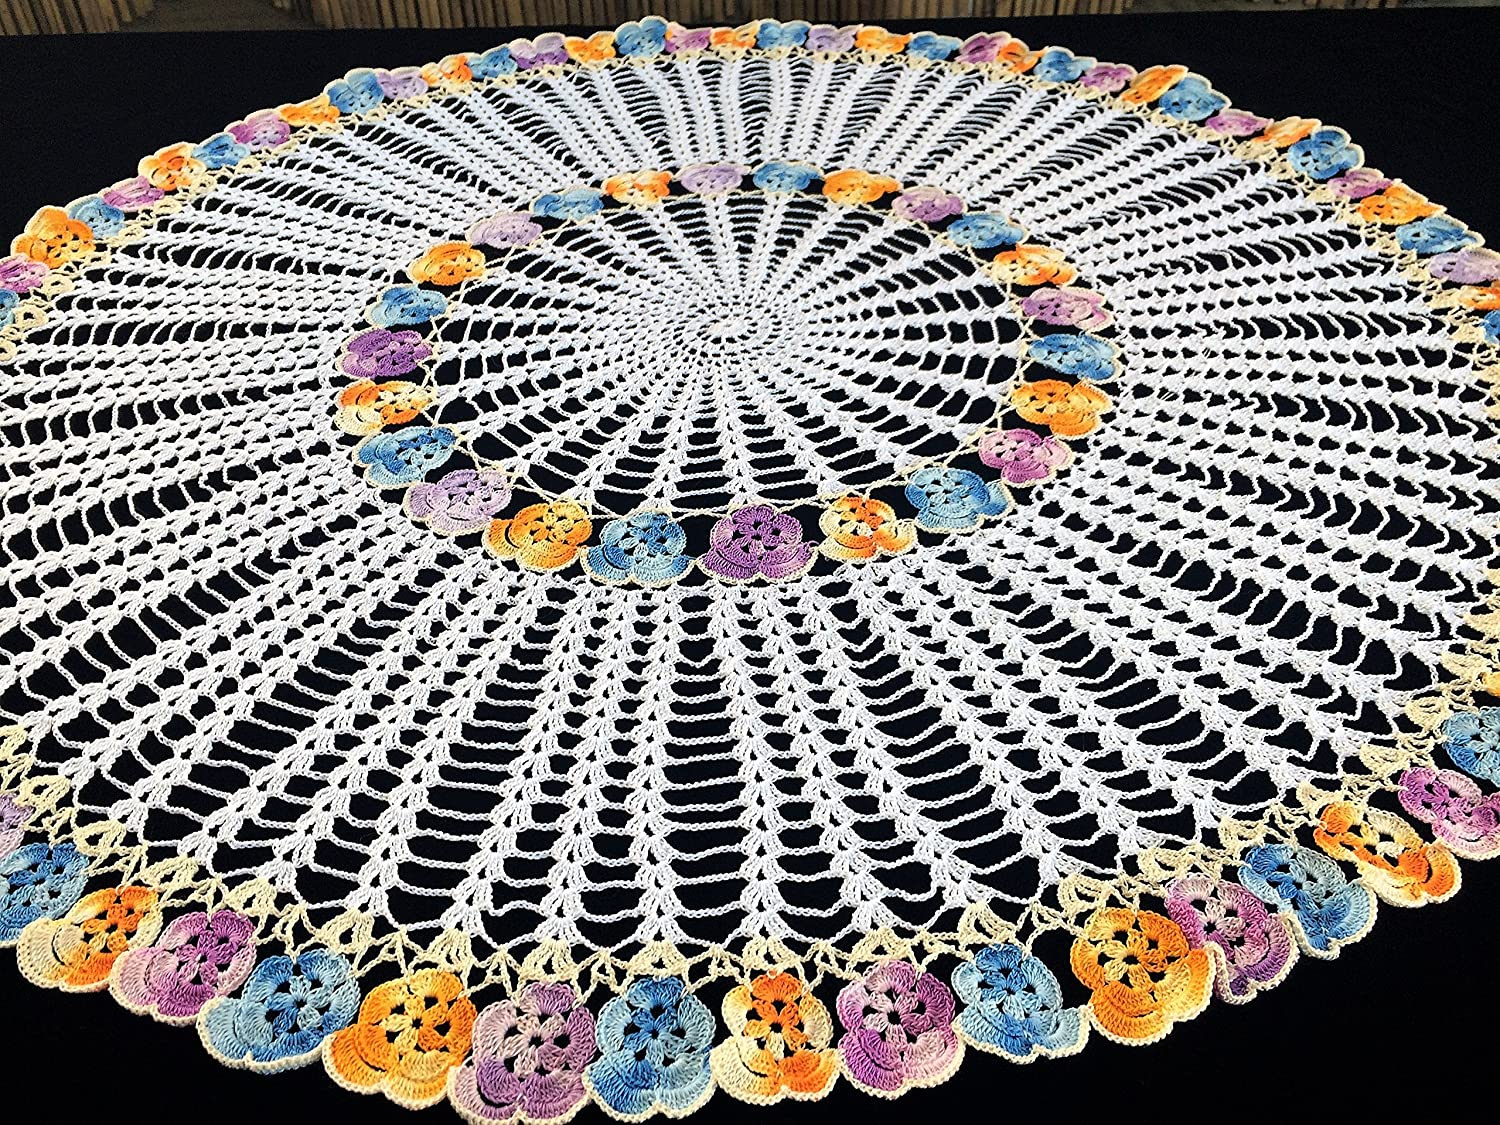 Amazoncom Crocheted Pansies Tablecloth New Lace Tablecloth Round